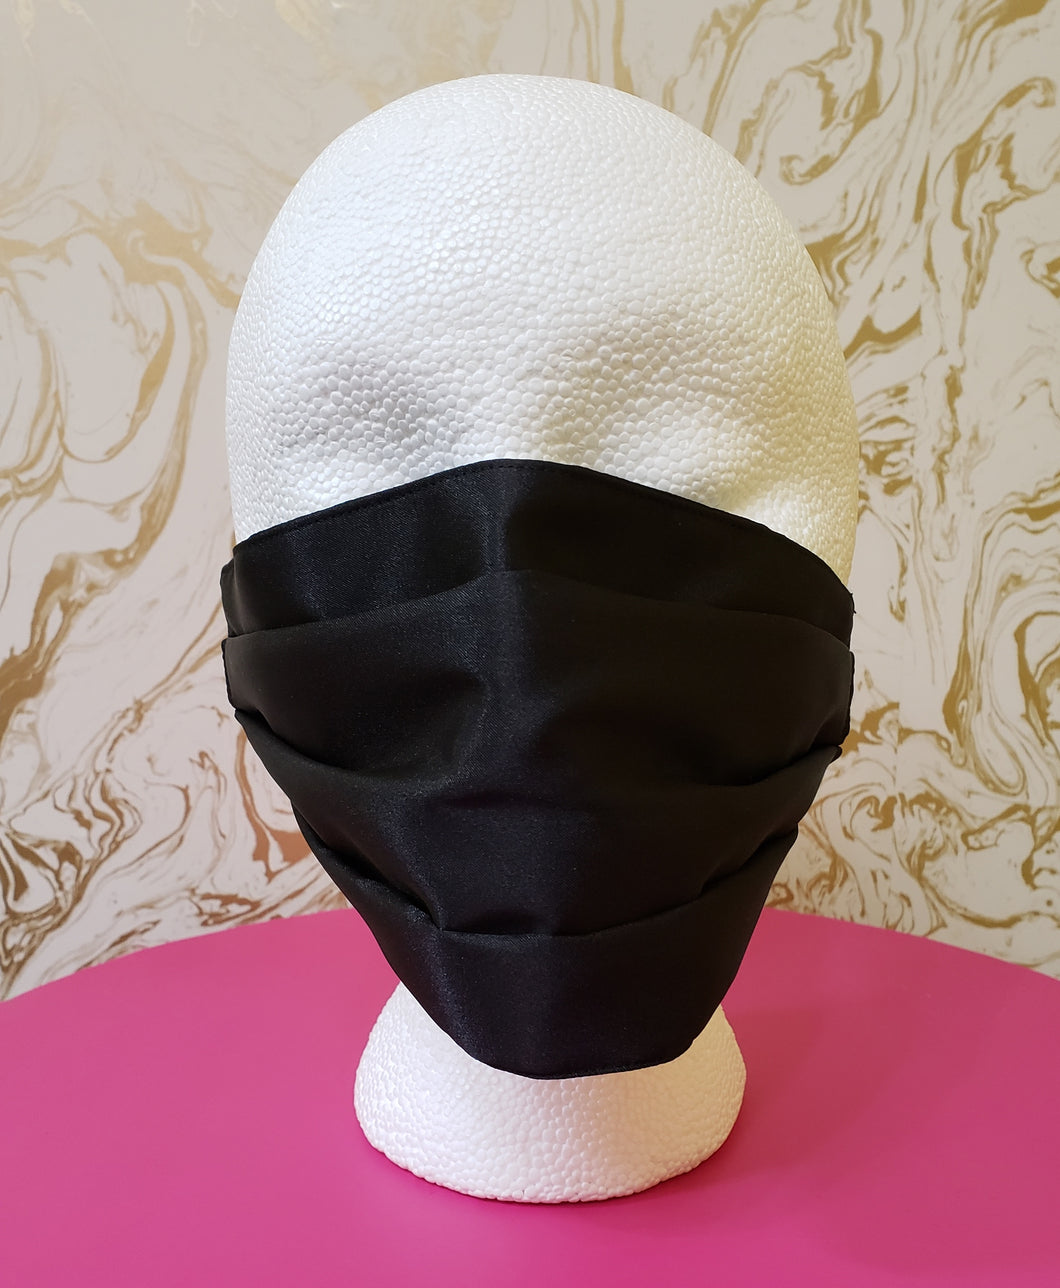 Satin Black Reversible Couture Fashion Filtered Face Mask - 3 Layers with Built in Filter - Adults